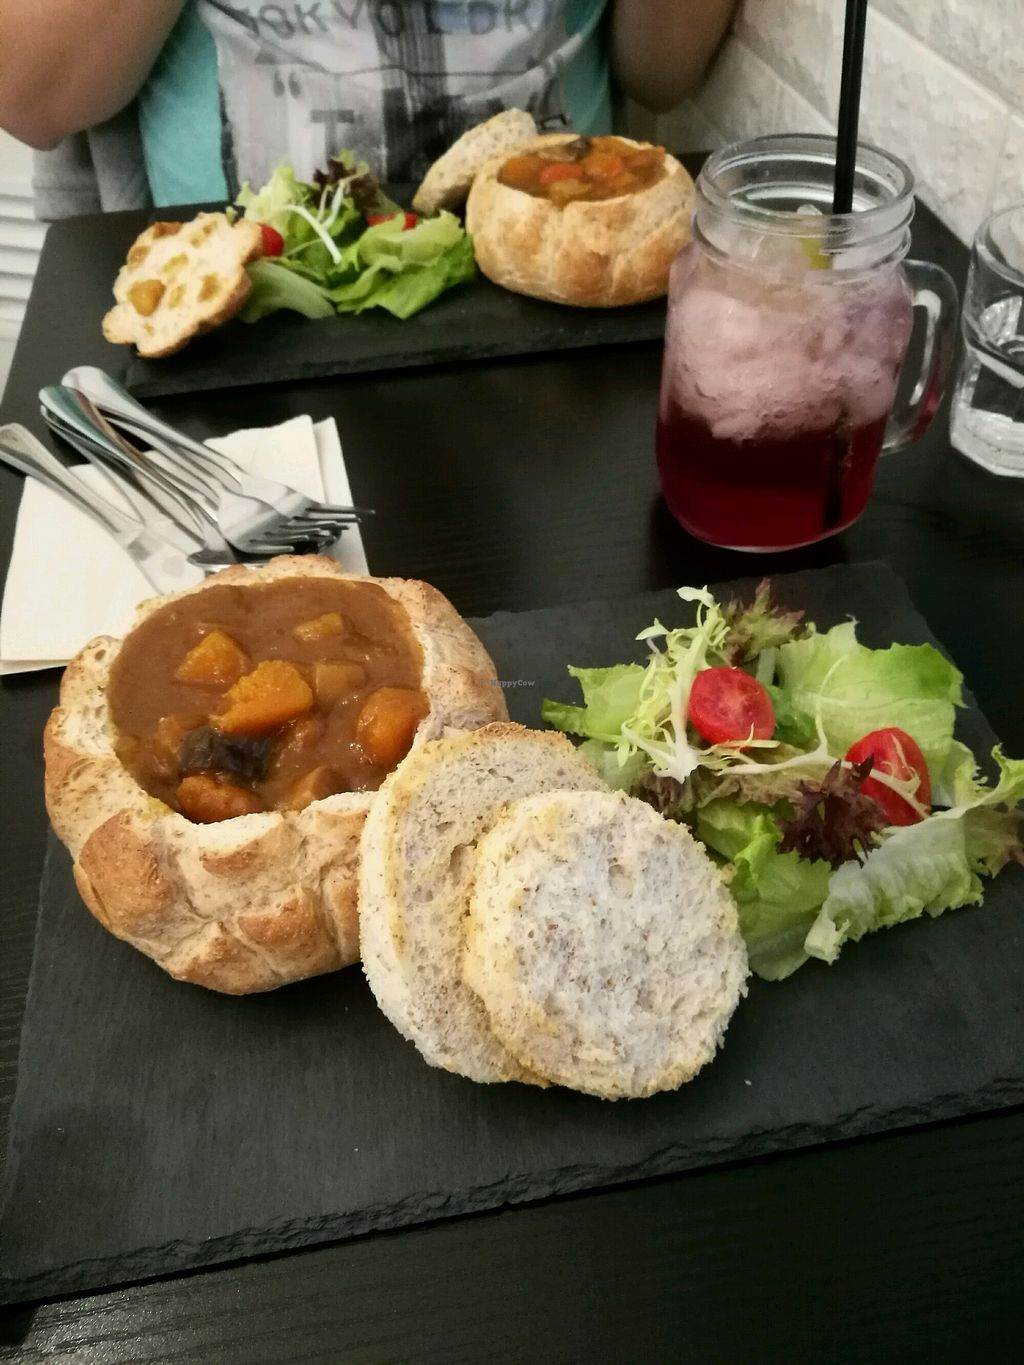 """Photo of Veggie Macau  by <a href=""""/members/profile/SarahHartland"""">SarahHartland</a> <br/>Japanese curry in a bread bowl vegan <br/> March 10, 2018  - <a href='/contact/abuse/image/53199/368833'>Report</a>"""